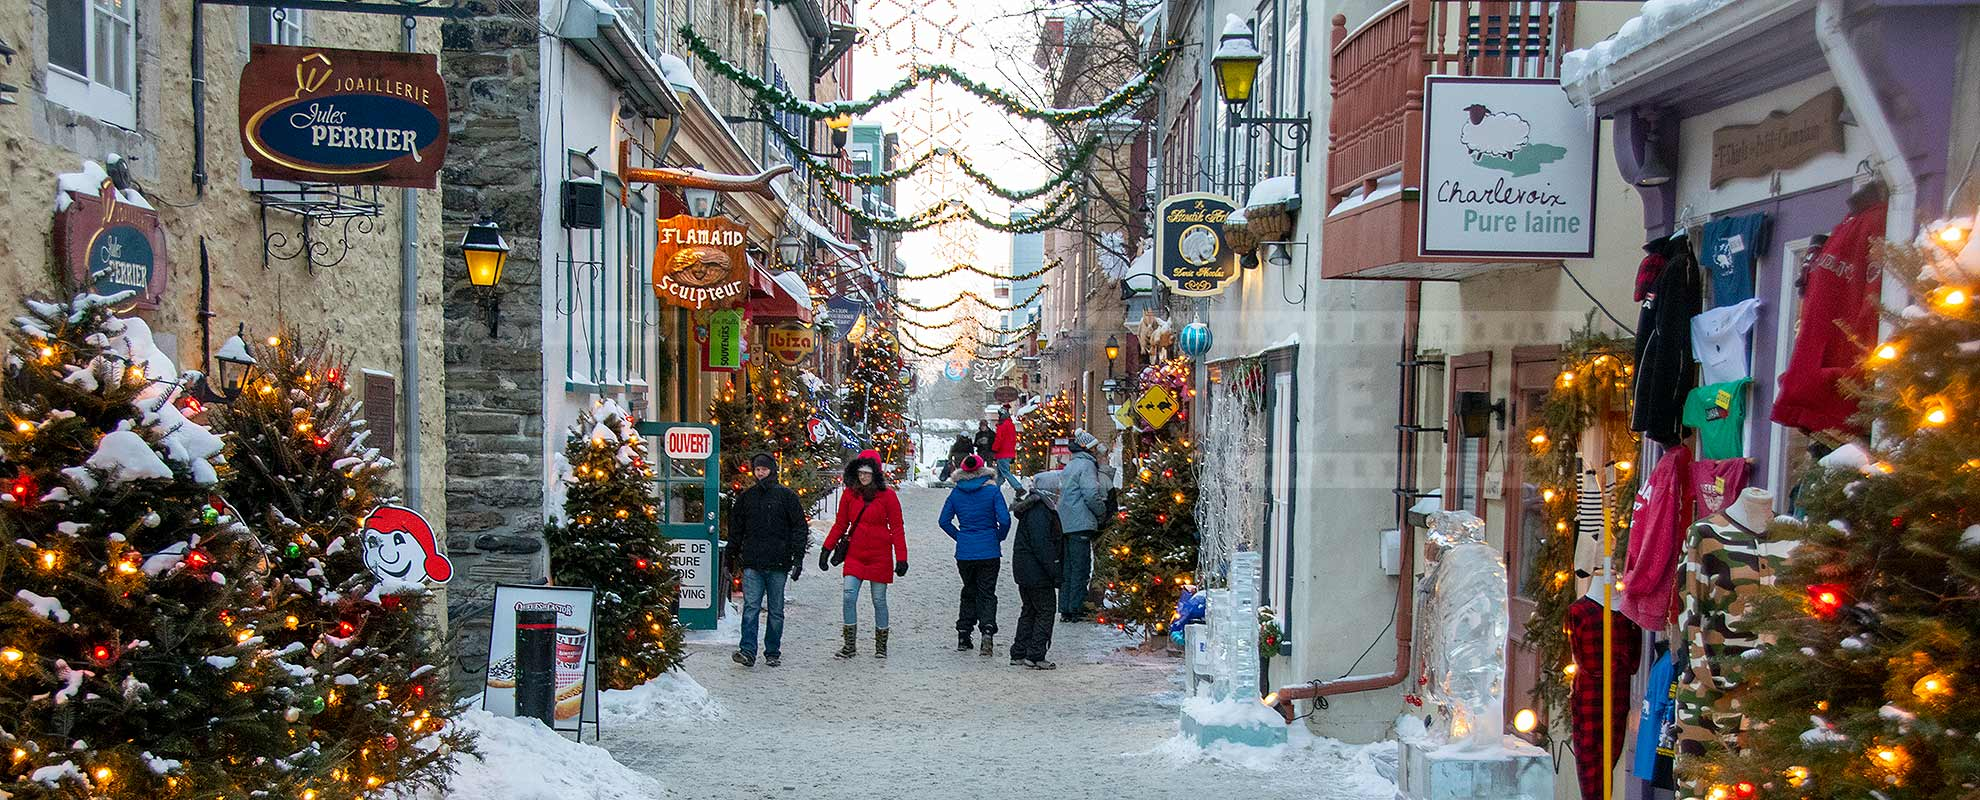 Pretty winter street in old Quebec city